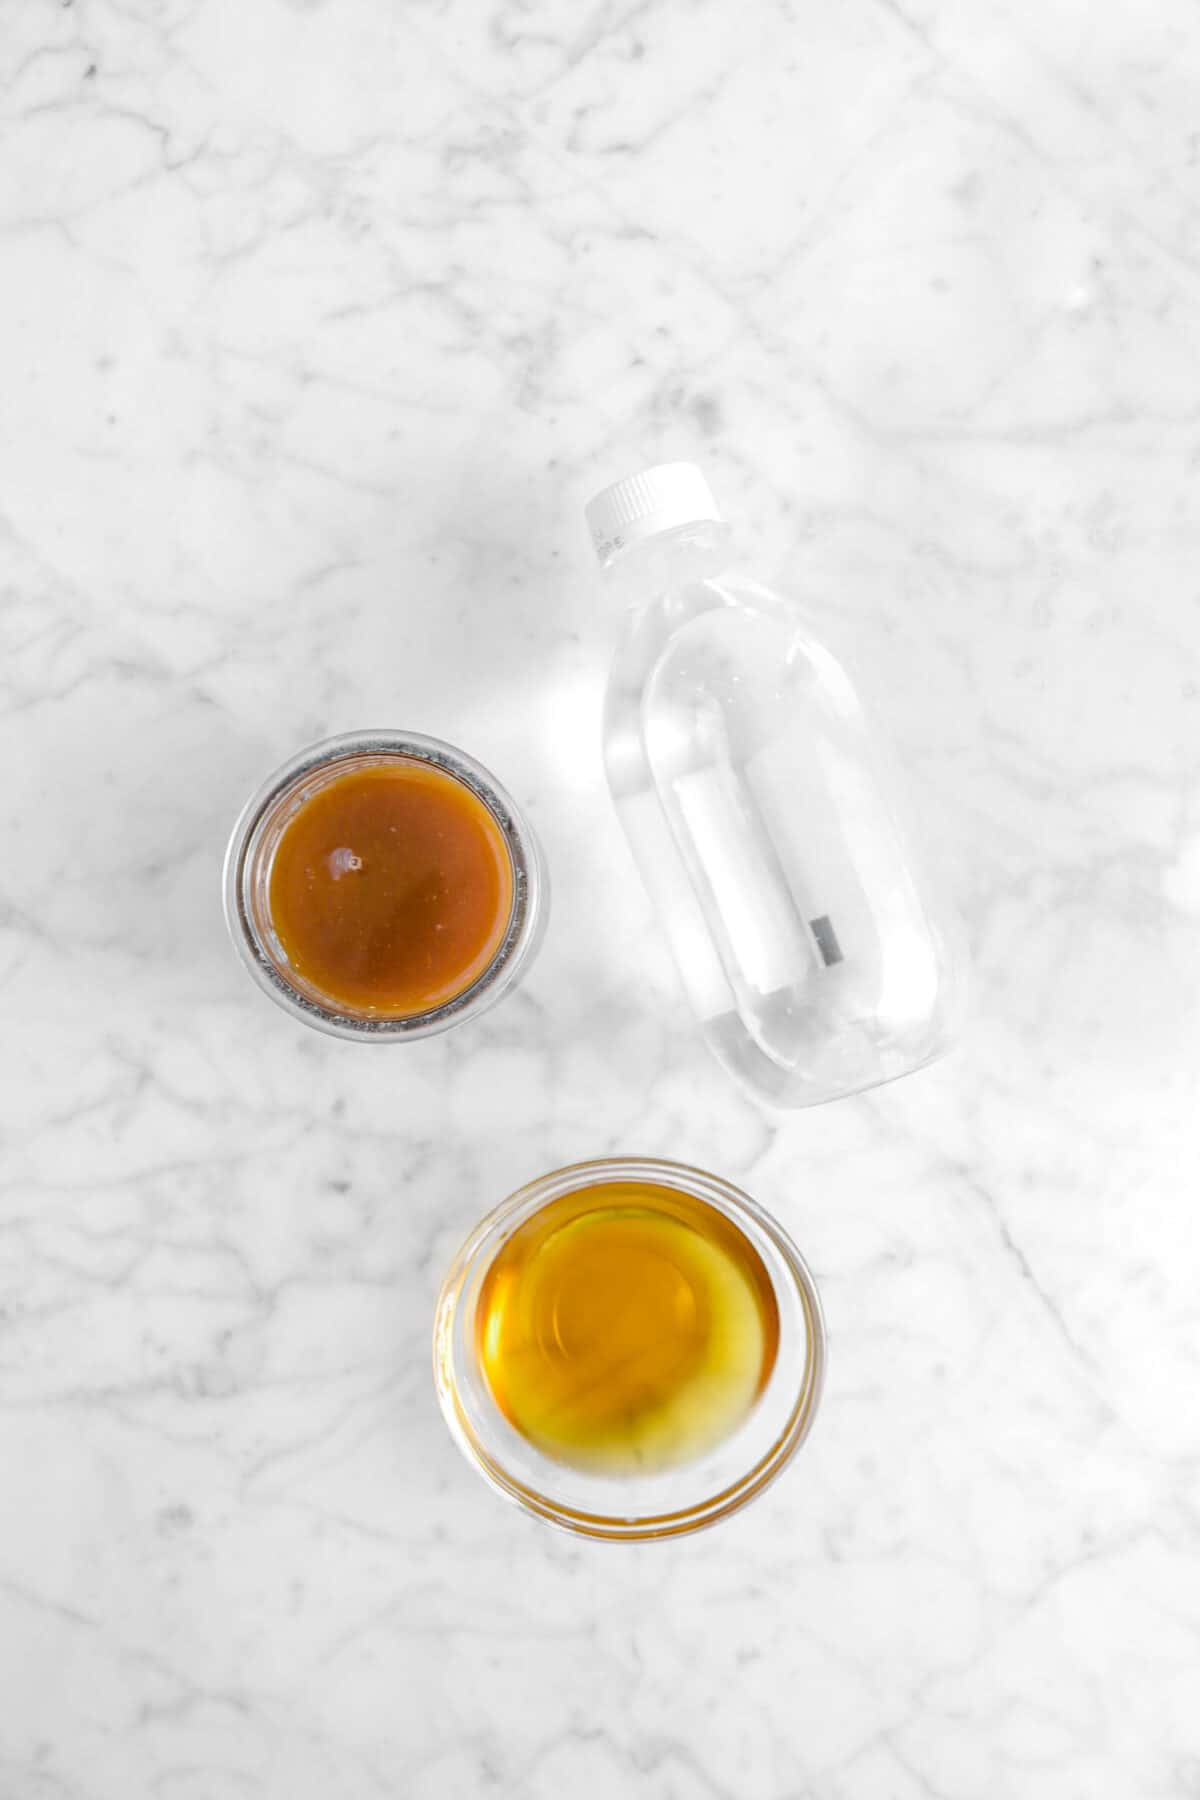 club soda, bourbon, and boiled cider on marble counter